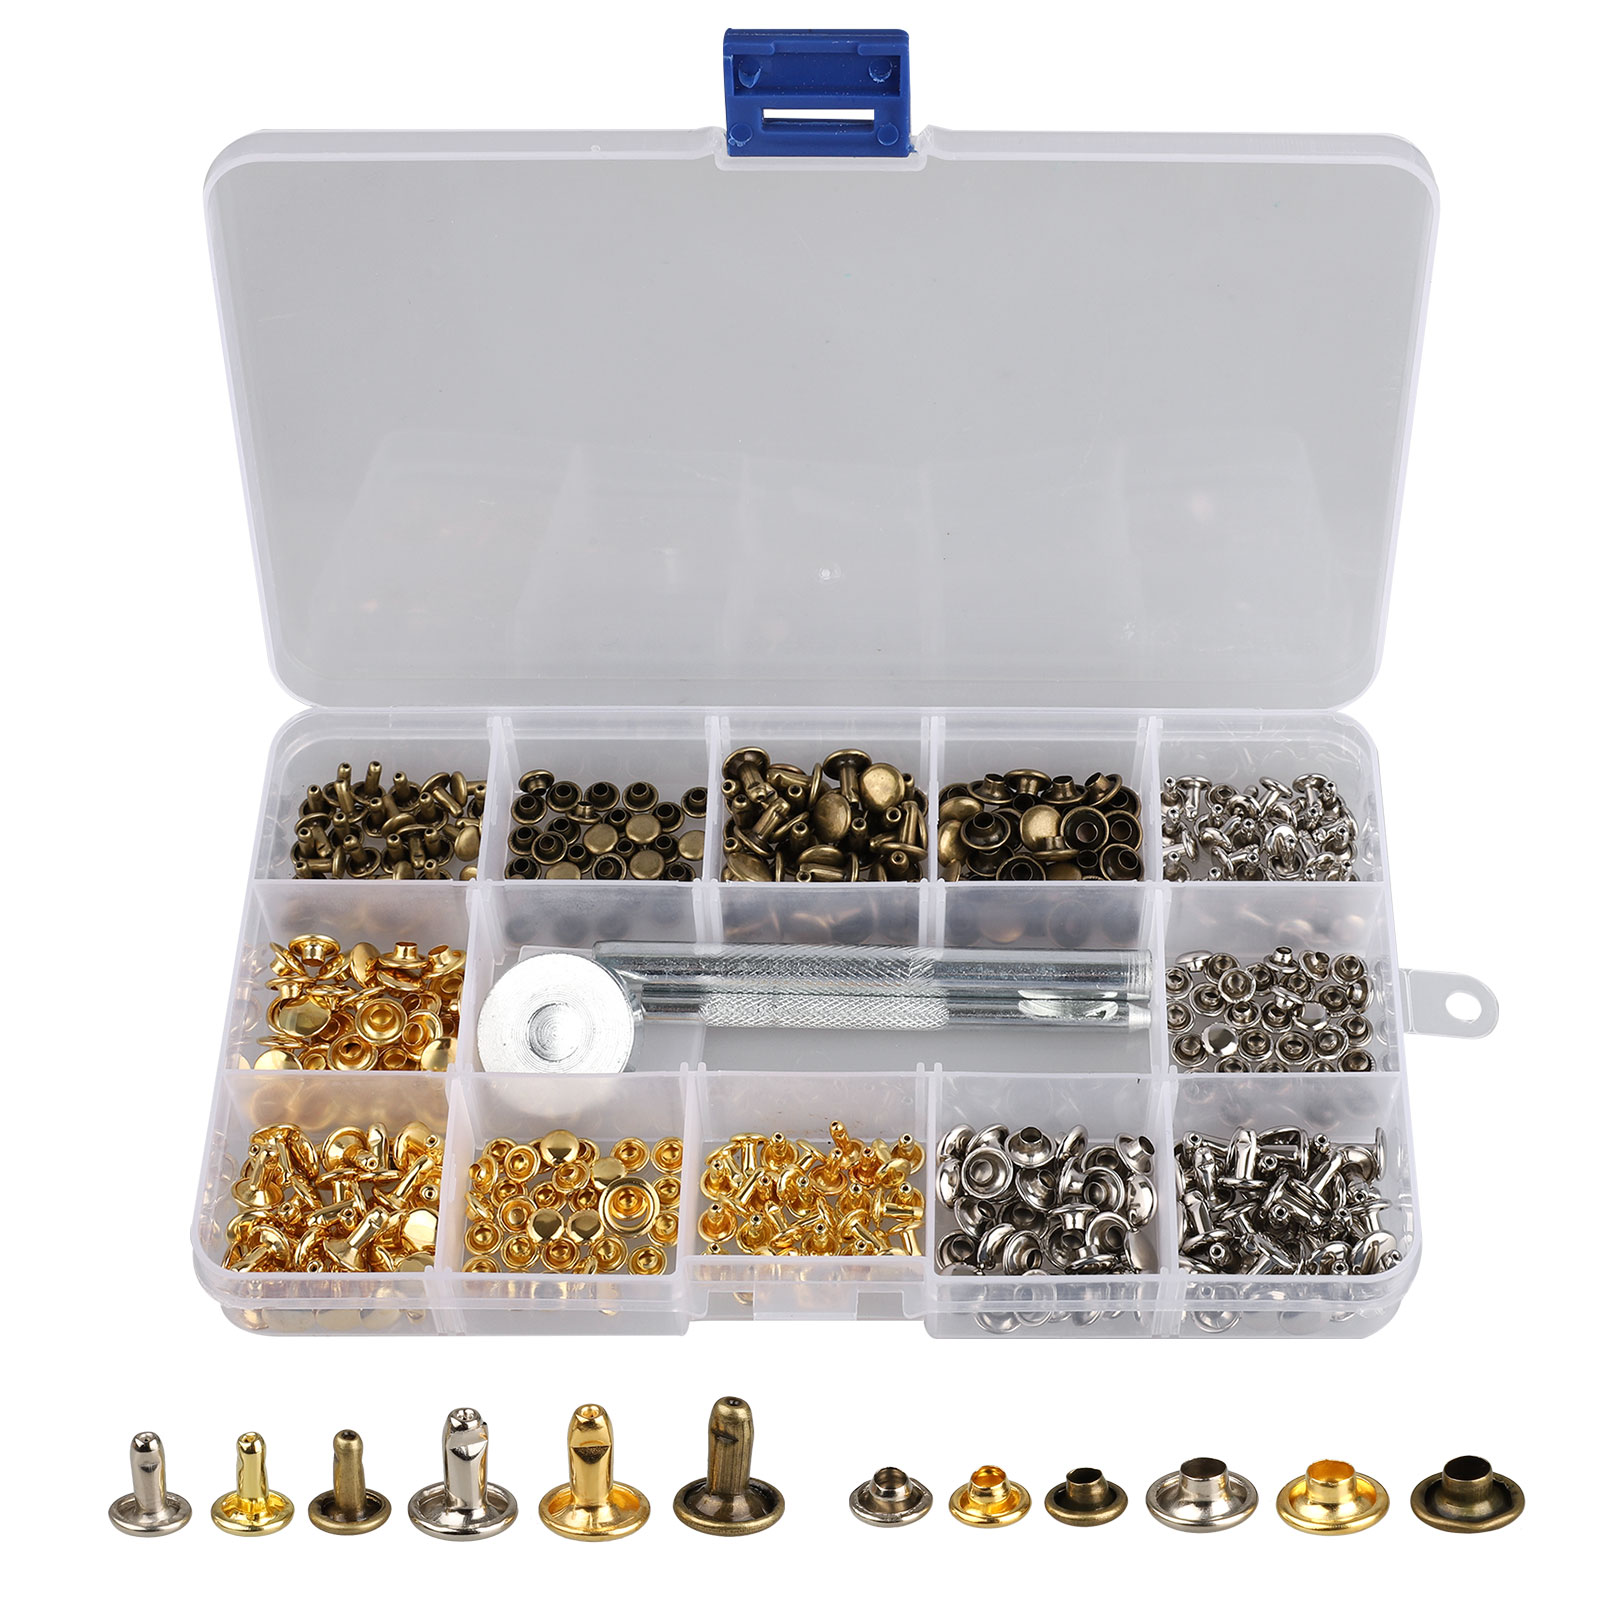 EEEKit 180 Set 2 Sizes Leather Rivets Single Cap Rivet Tubular Metal Studs with 3 Pieces Fixing Tool for DIY Leather Craft Rivets Replacement, 3 Color: Bronze & Gold & silver